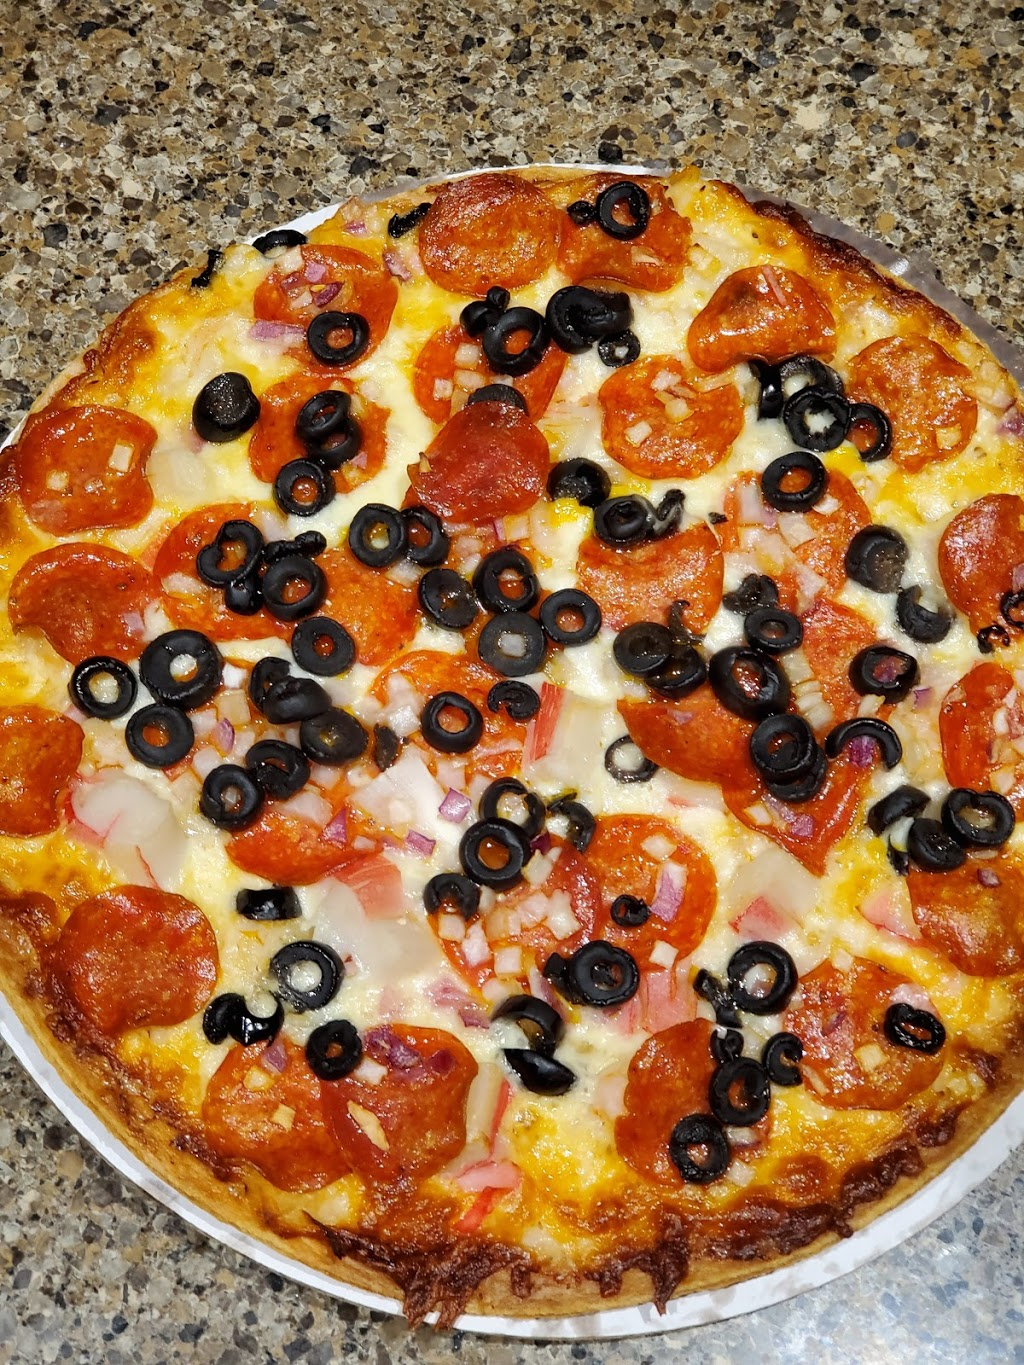 eatons fresh pizza grafton | meal takeaway | 1615 Wisconsin Ave, Grafton, WI 53024, USA | 2624218589 OR +1 262-421-8589